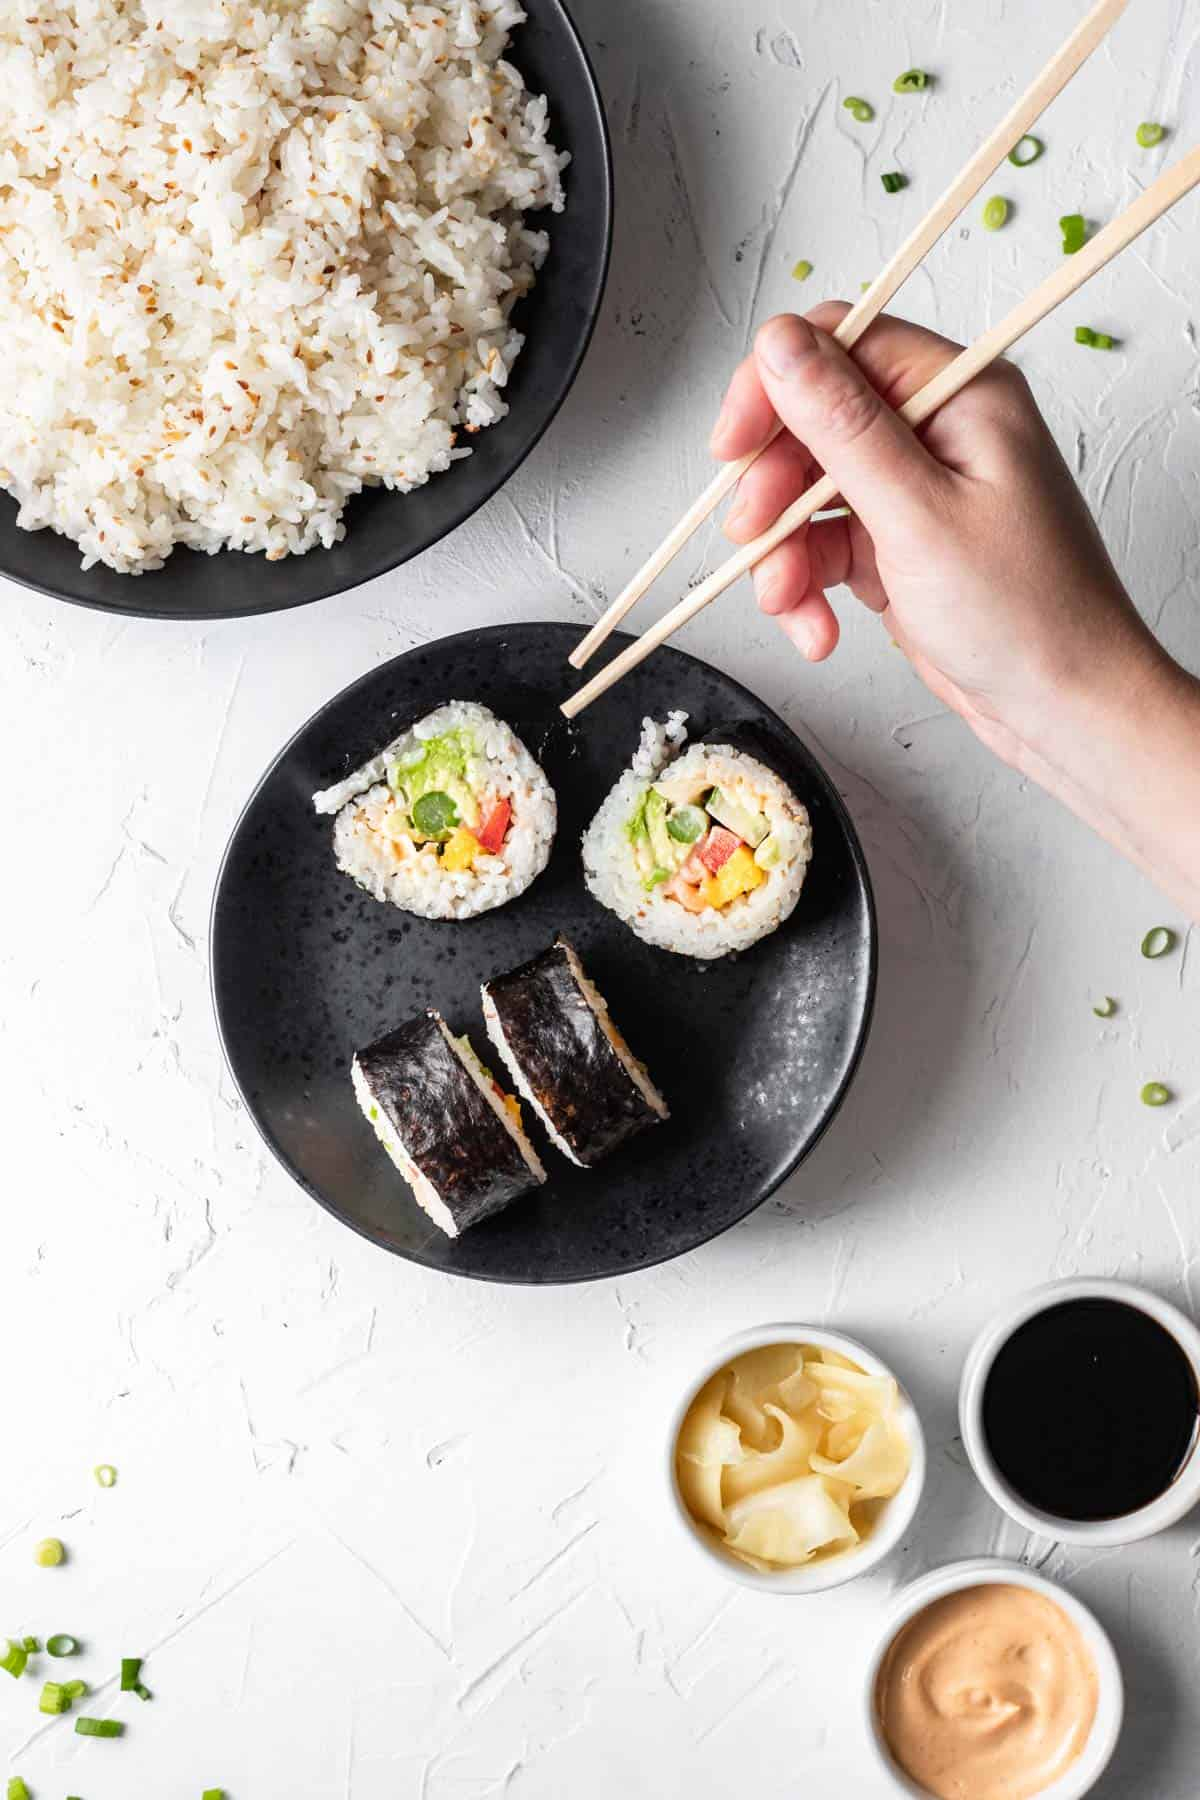 4 pieces of rolled sushi on a black plate with cooked sushi rice above and a hand with chopsticks to the right.